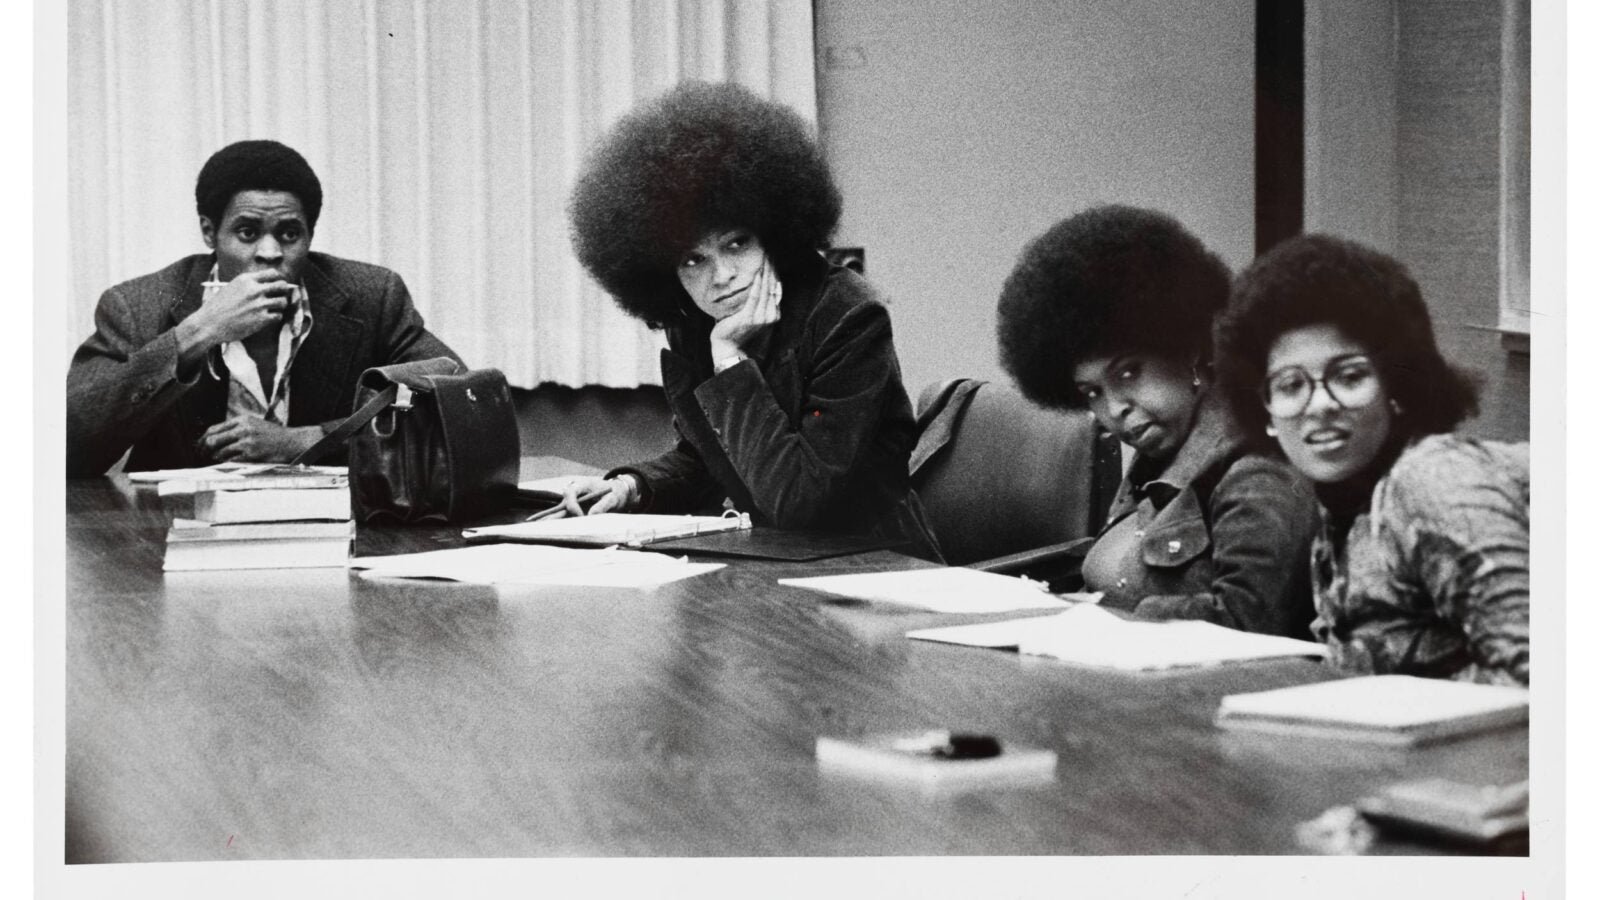 A black and white photo of young Angela Davis sitting at a conference table with three other people